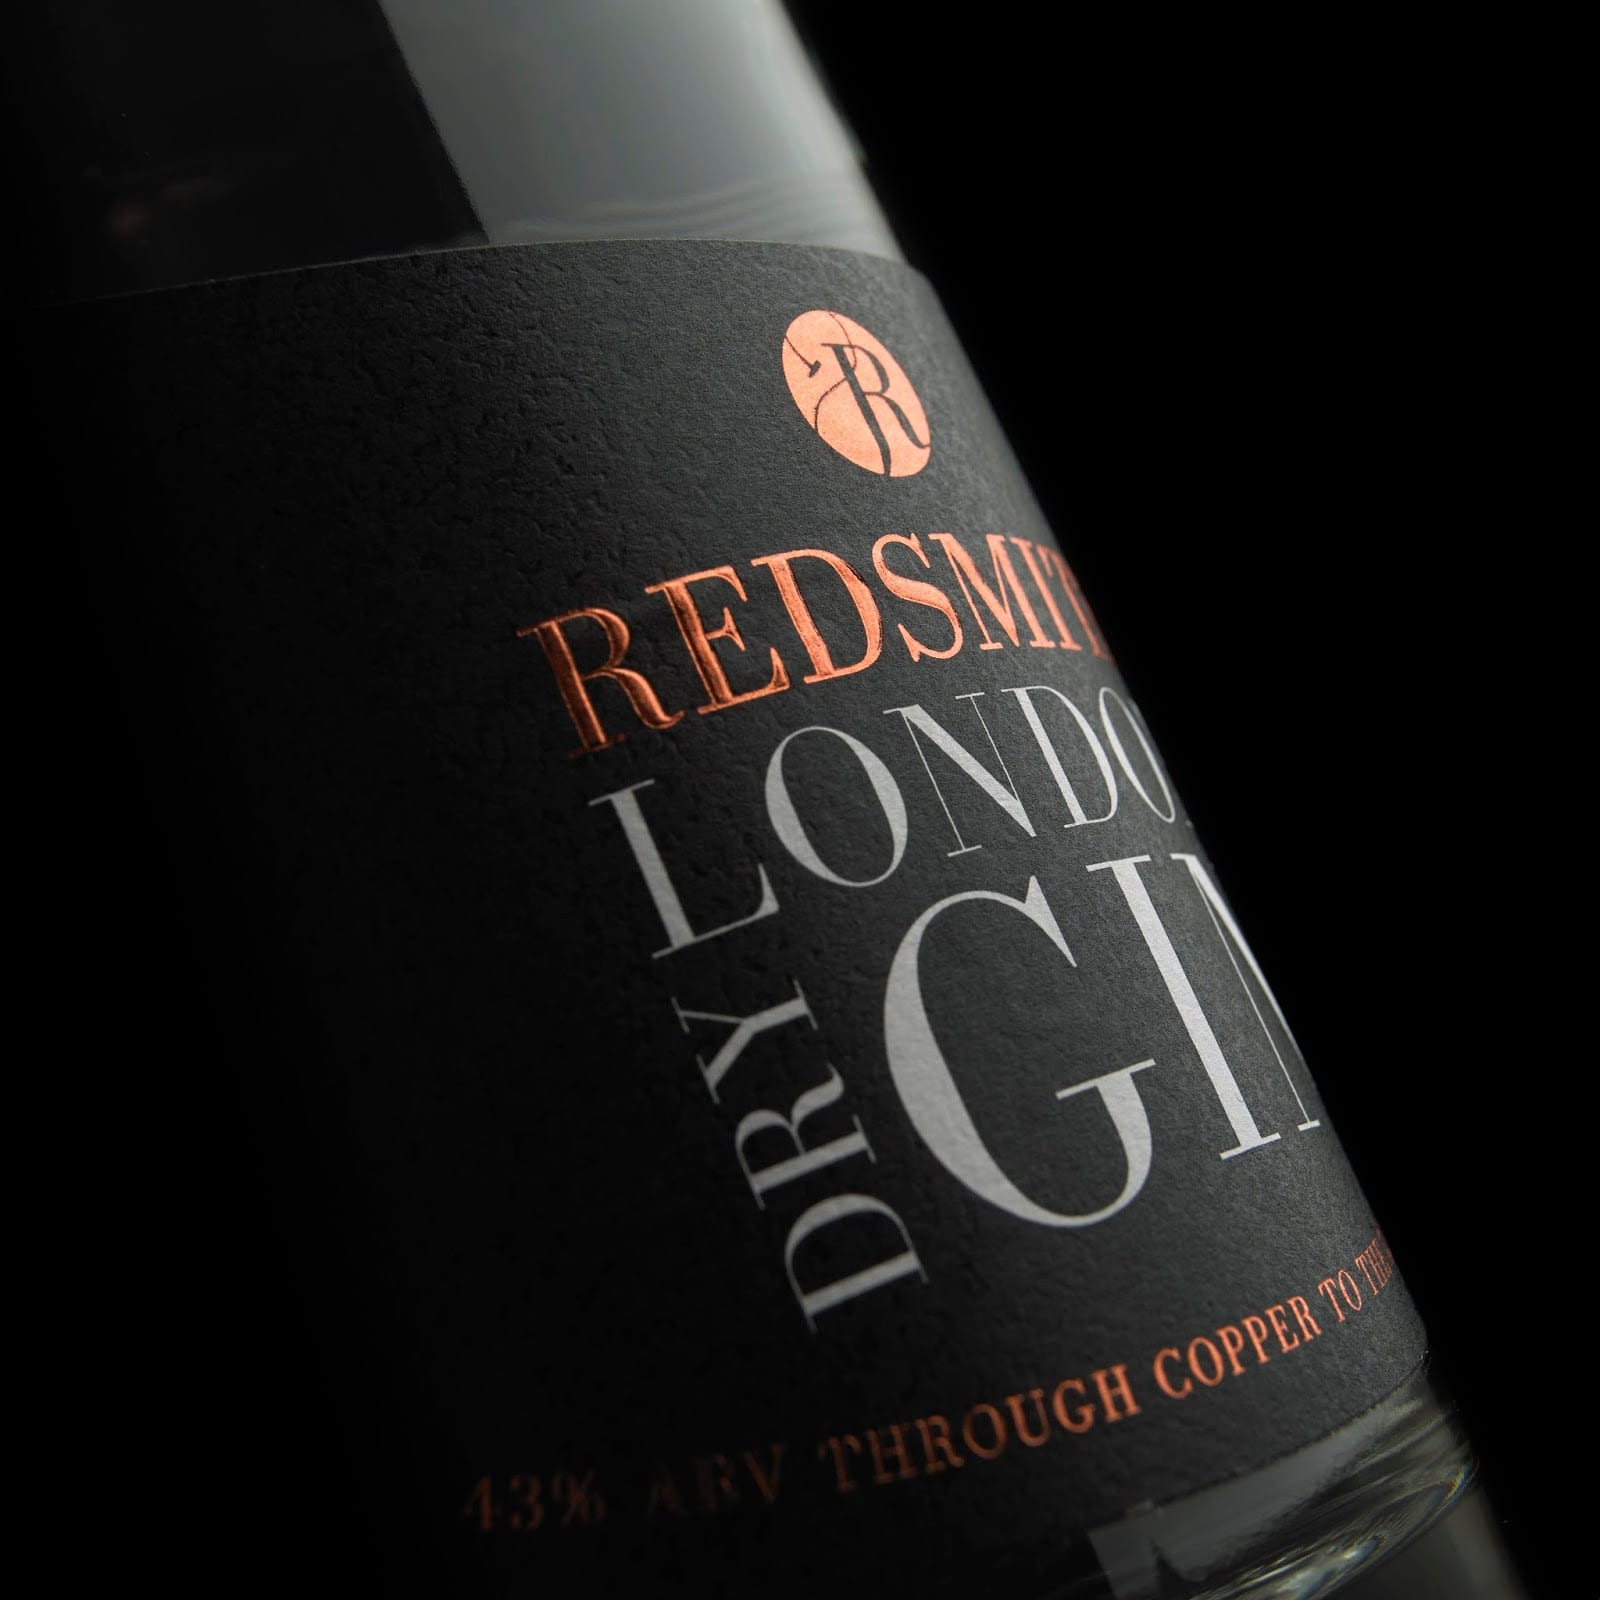 Royston Labels Redsmith 3 - Redsmith London Dry Gin